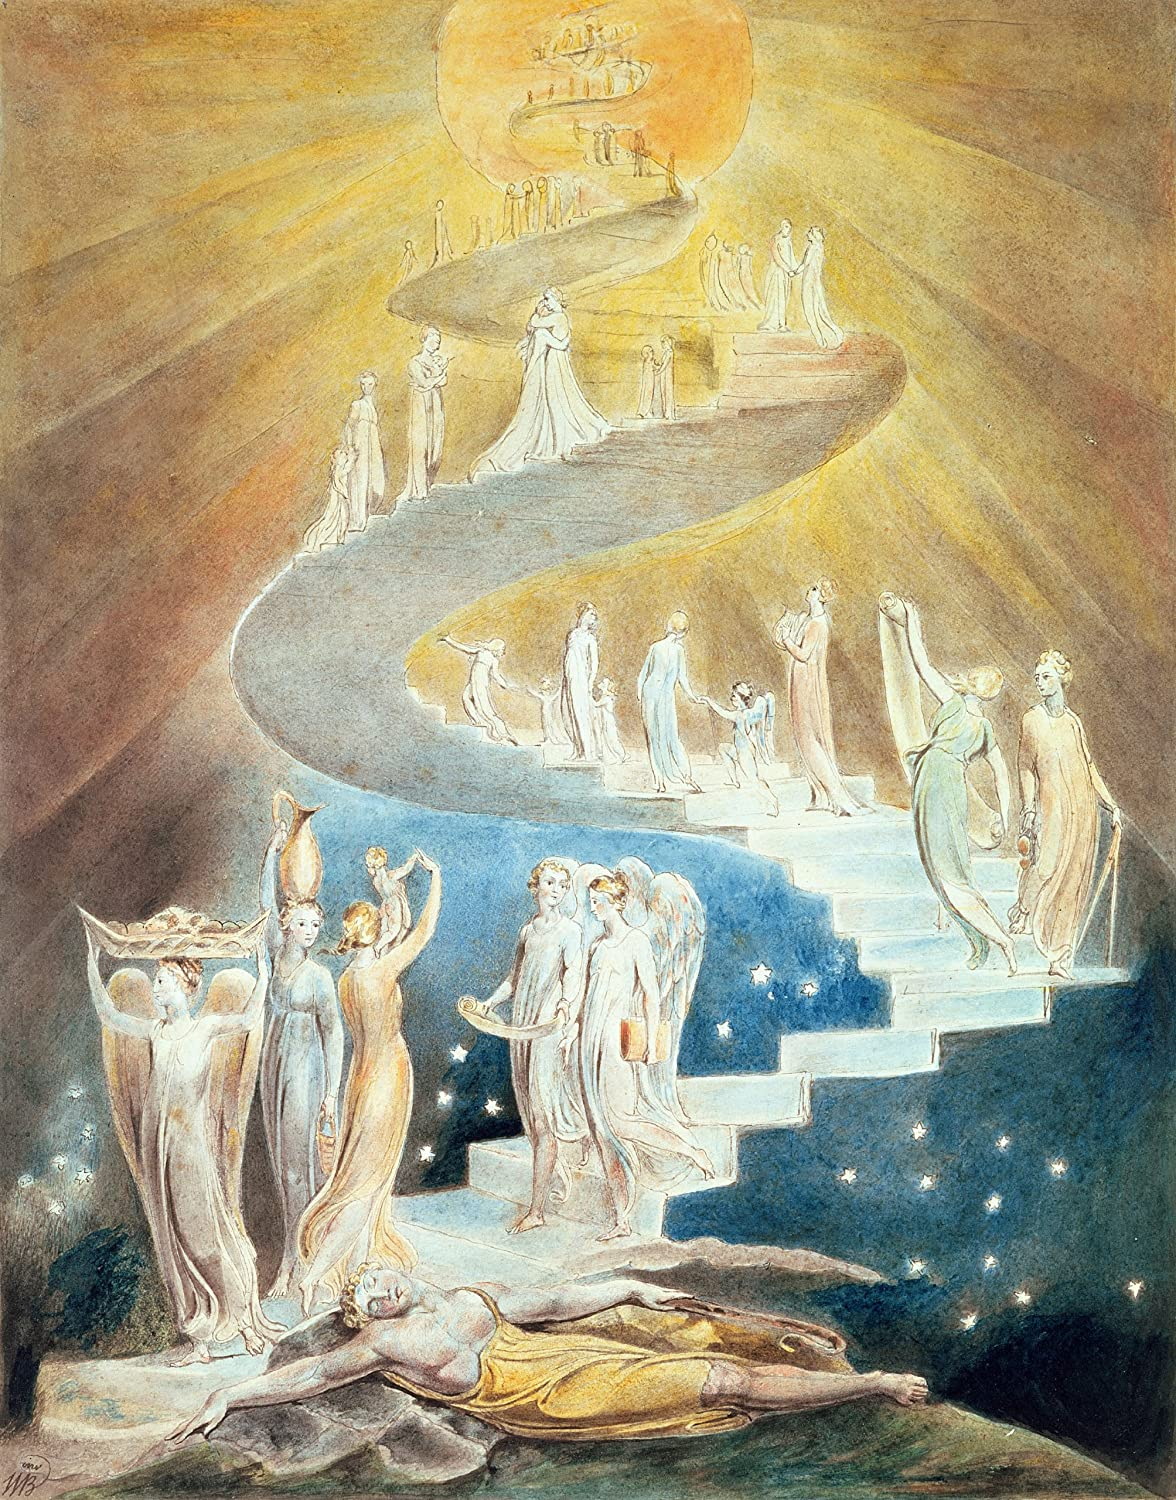 22 by 28-Inch ArtWall William Blake Jacobs Ladder  Unwrapped Canvas Art